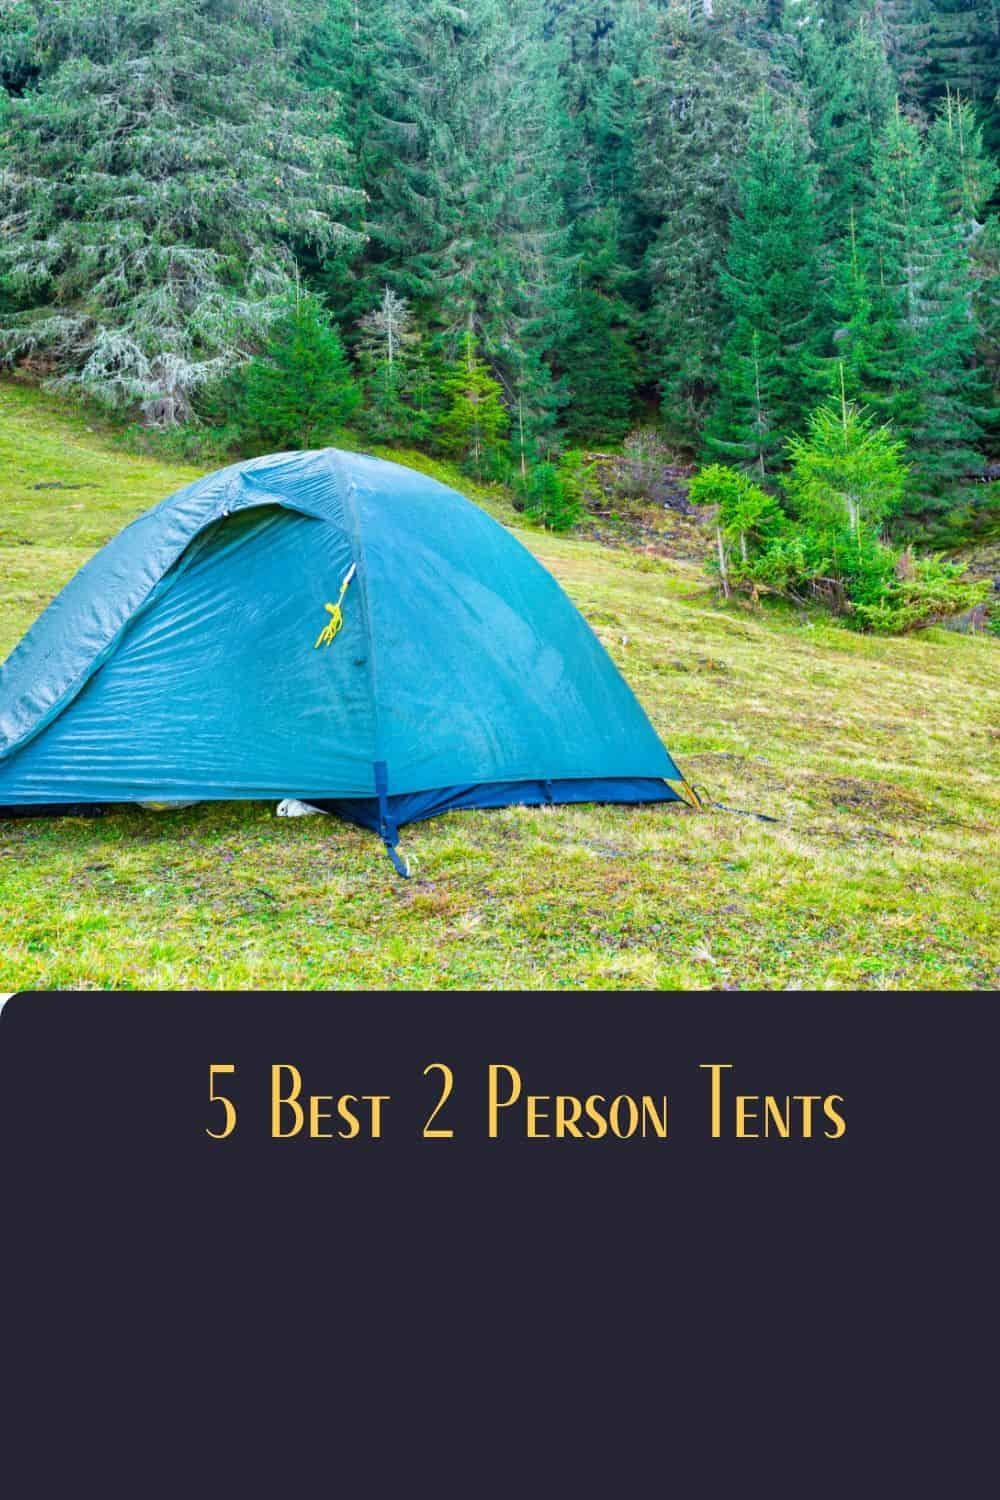 Pinterest image for 5 Best 2 Person Tents